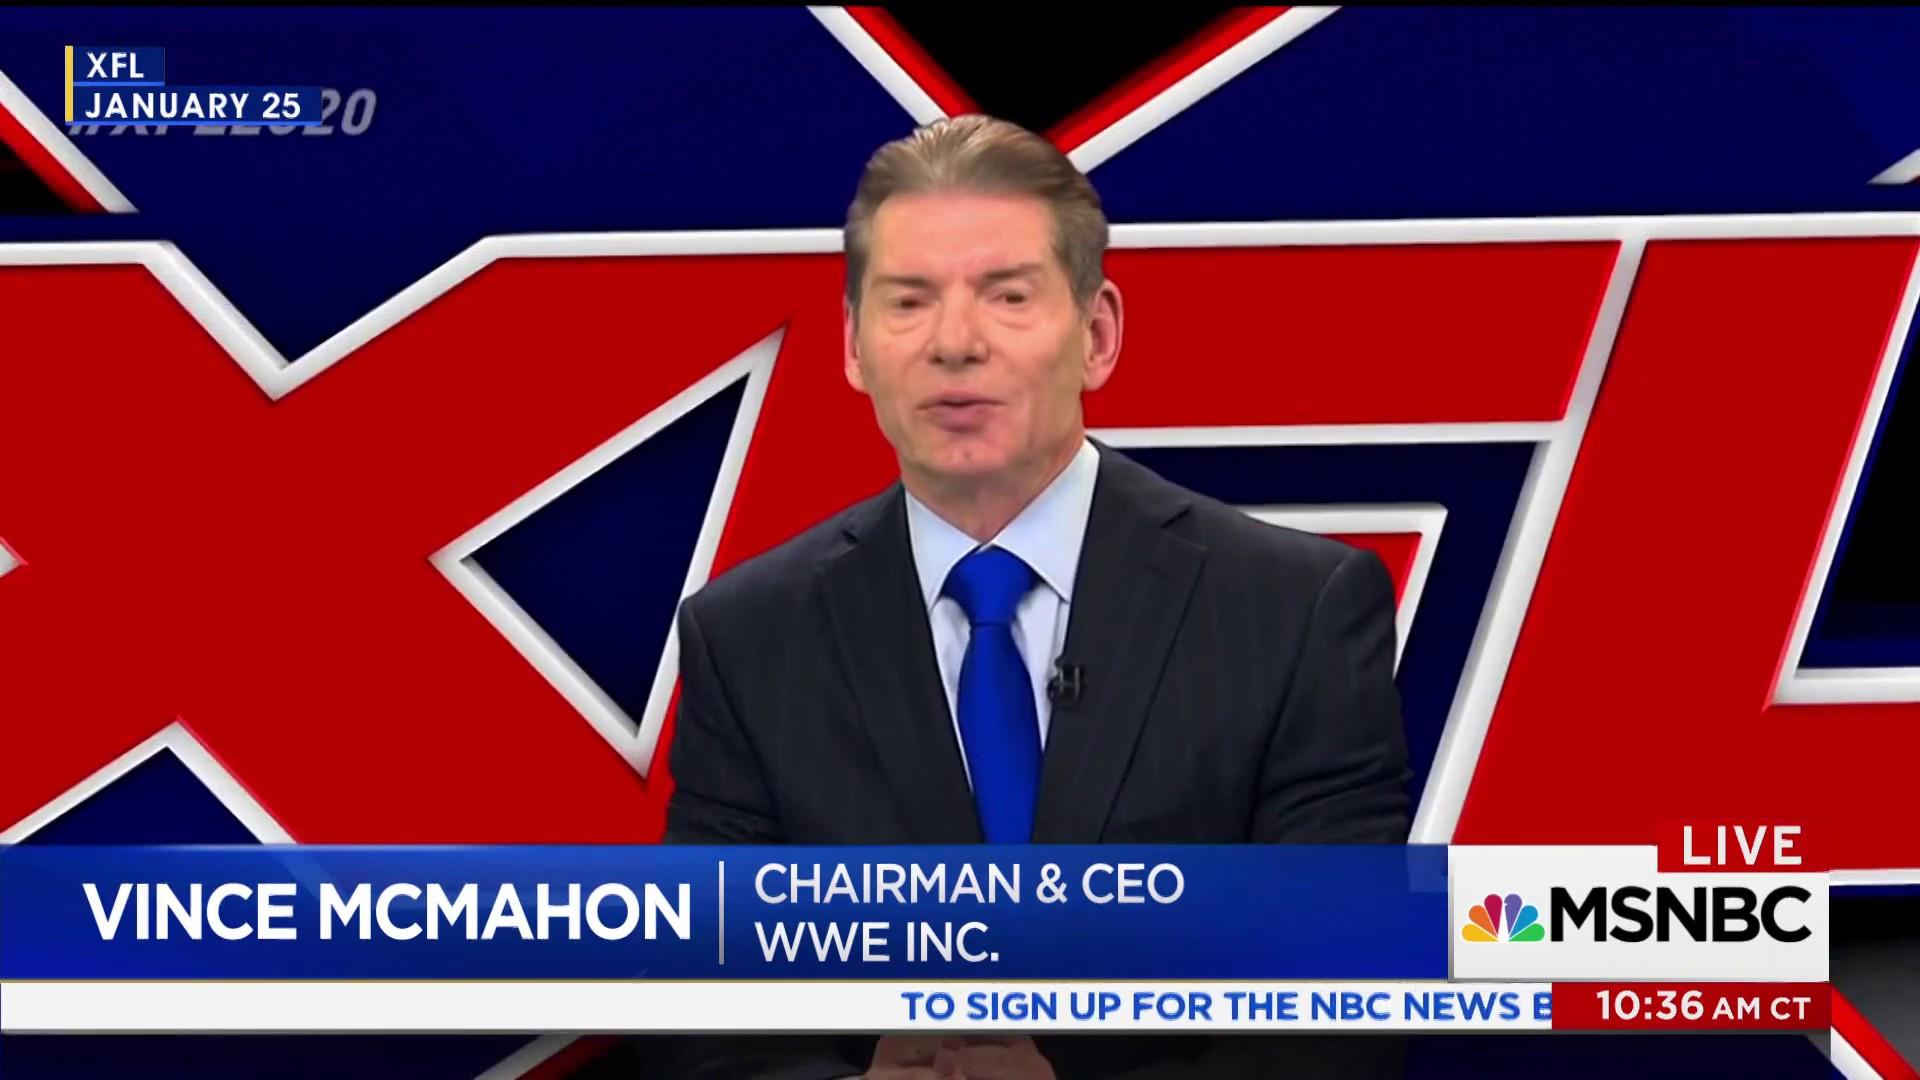 The sanctimony of Vince McMahon's XFL relaunch